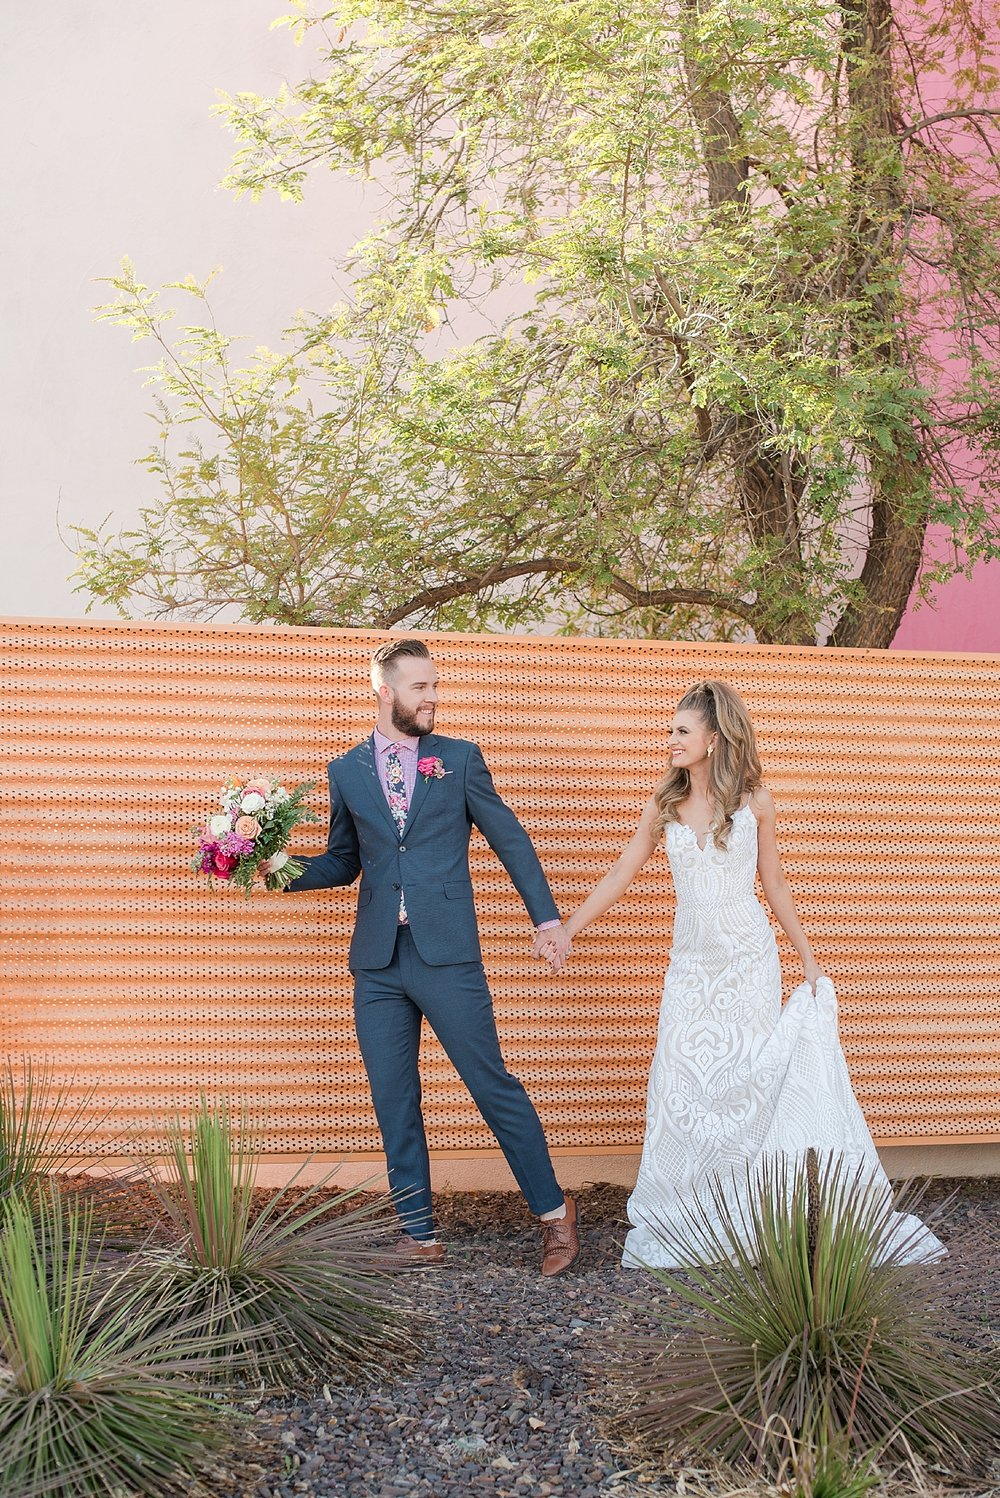 Gorgeous bride Natalie Meyer wearing a dress by Bella Lily Bridal, with her groom Zach Meyer at The Saguaro Scottsdale. Hair and makeup was done by Makiaj Beauty. Grooms tux was provided by Magro Clothing.